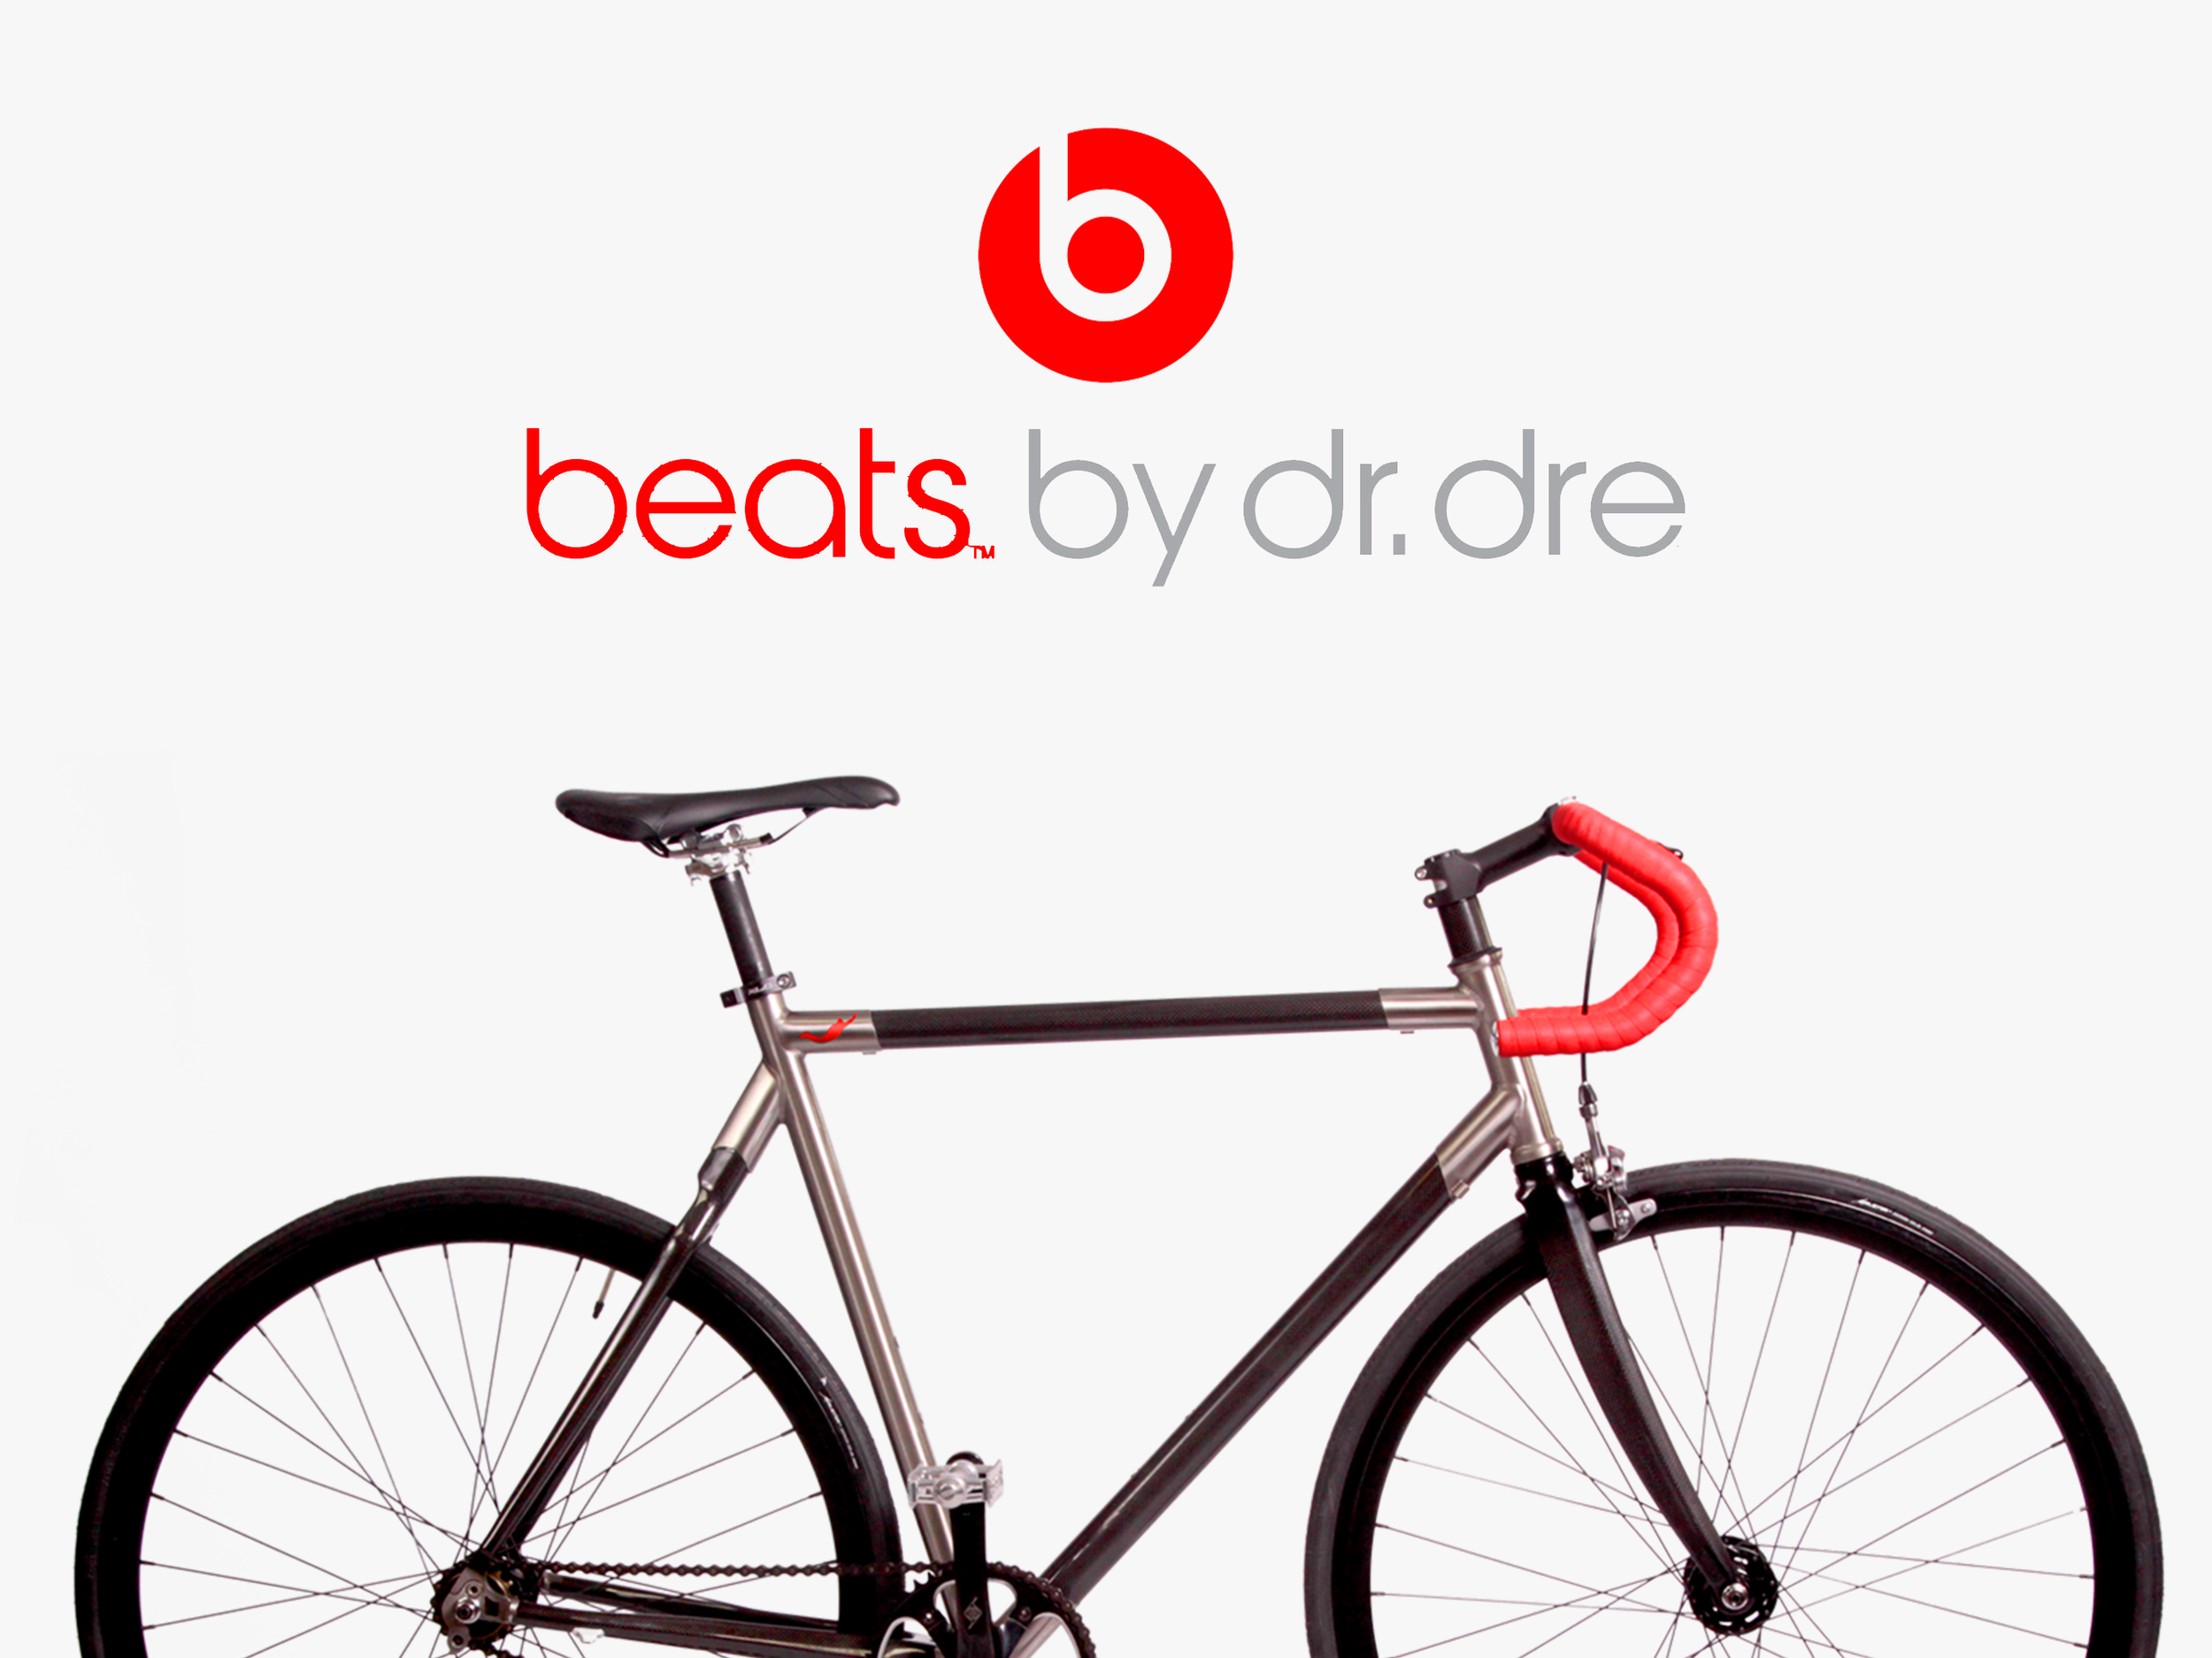 Solé_beats_bike2.png